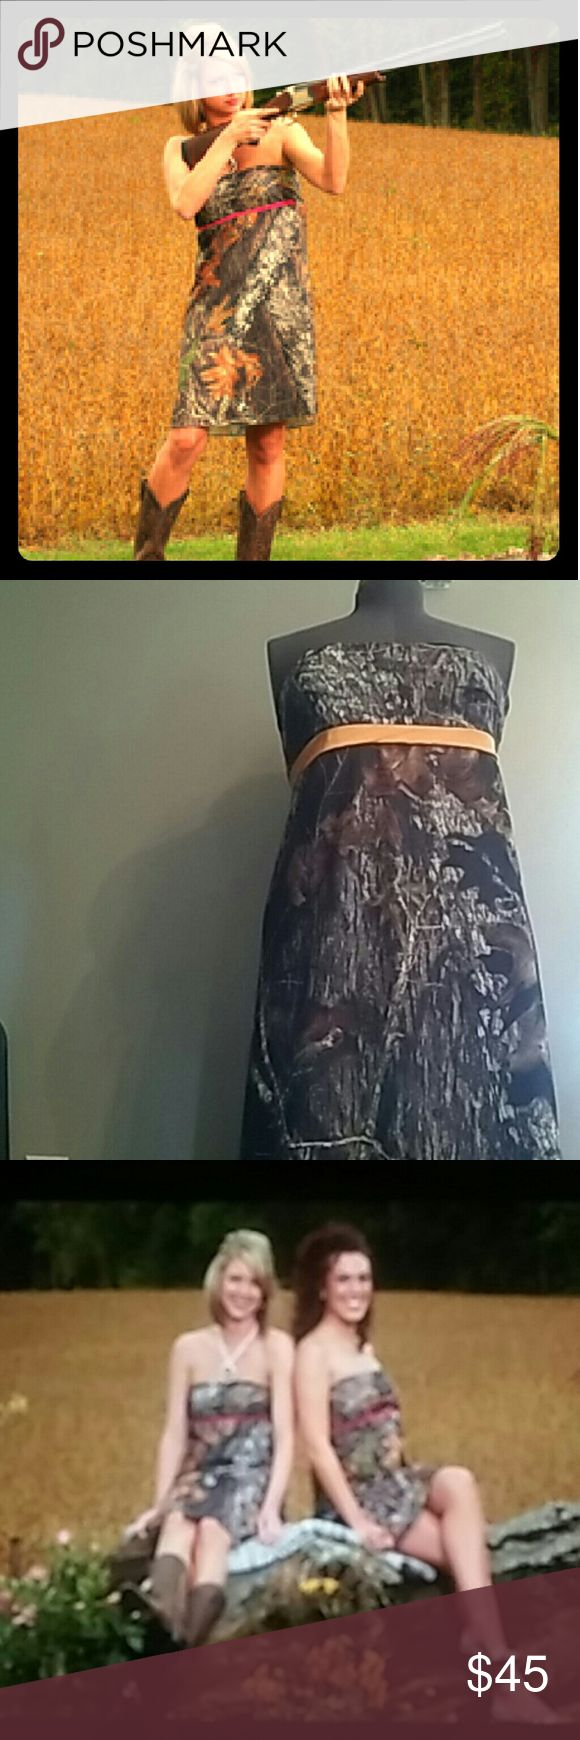 Camouflage Strapless Dress The cutest, most versatile camo dress around. This little camouflage dress looks great with boots or with heels. Wear as a camo party dress, camo bridesmaid dress or camouflage prom dress. Dress it up, dress it down, wear it everyday. Strapless top with feminine cut. Trim just below the bust is a fun detail and comes in blaze orange. Elastic at the top of the bodice. The fabric is in Mossy Oak New Break Up and has a little shine to it as well as stretch.  Bust…